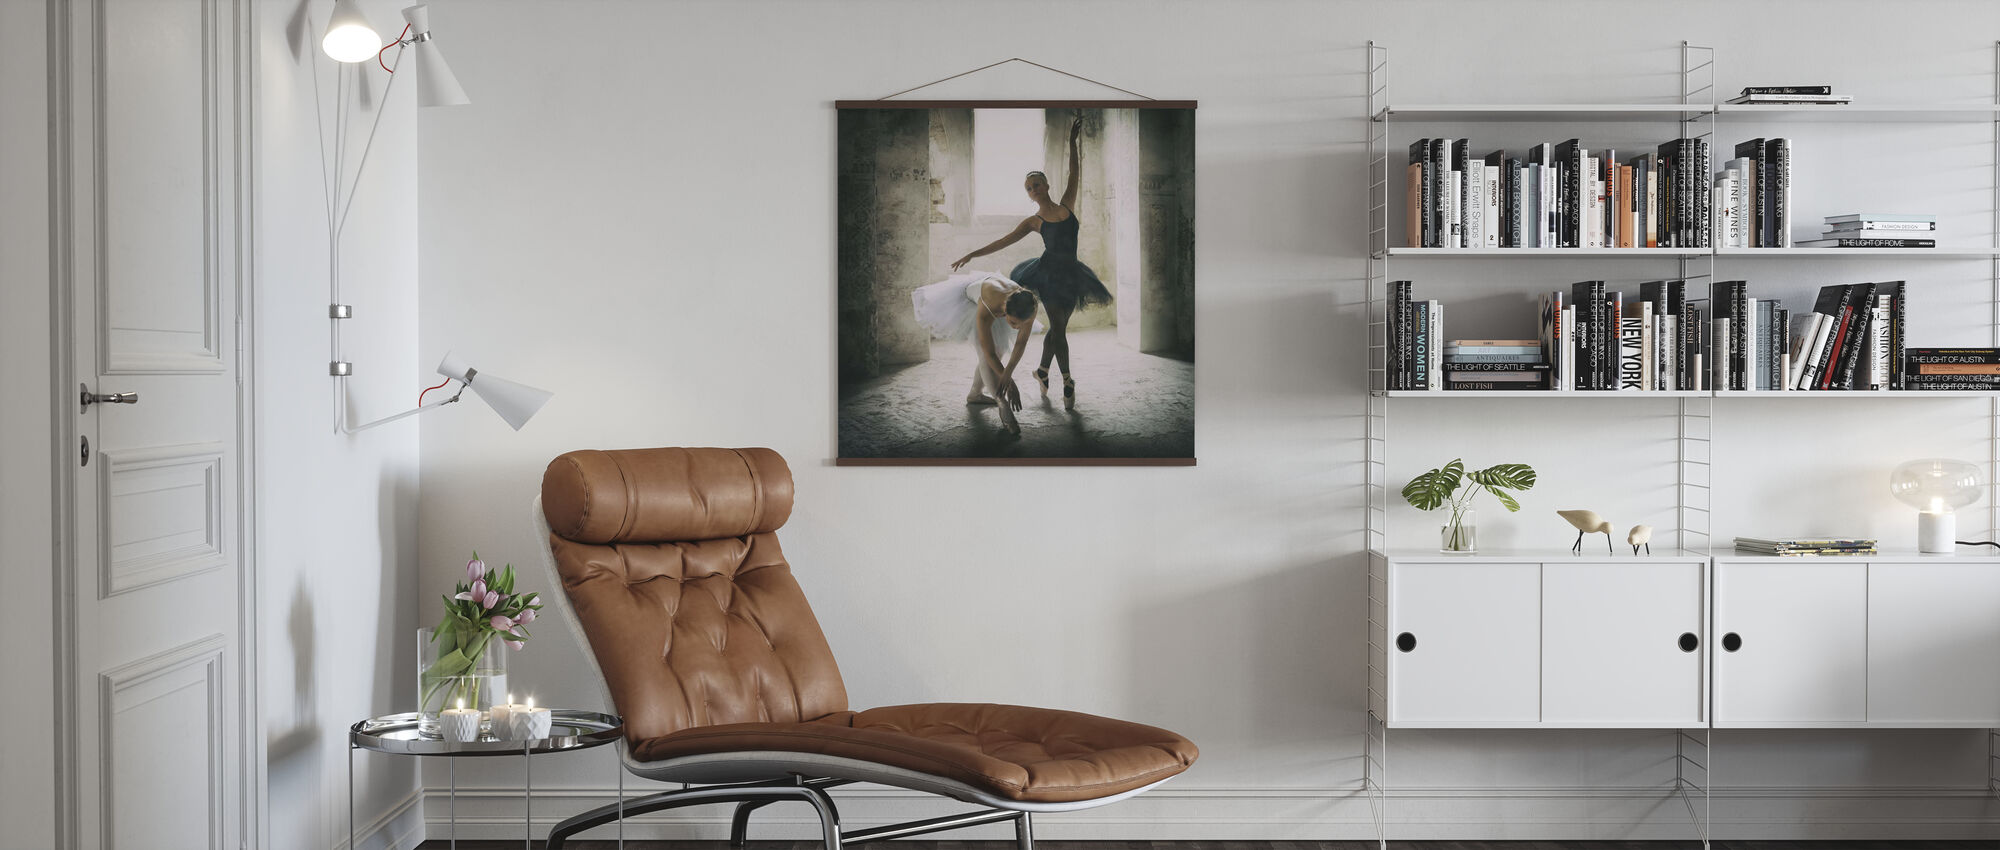 The Subtle Bow - Poster - Living Room